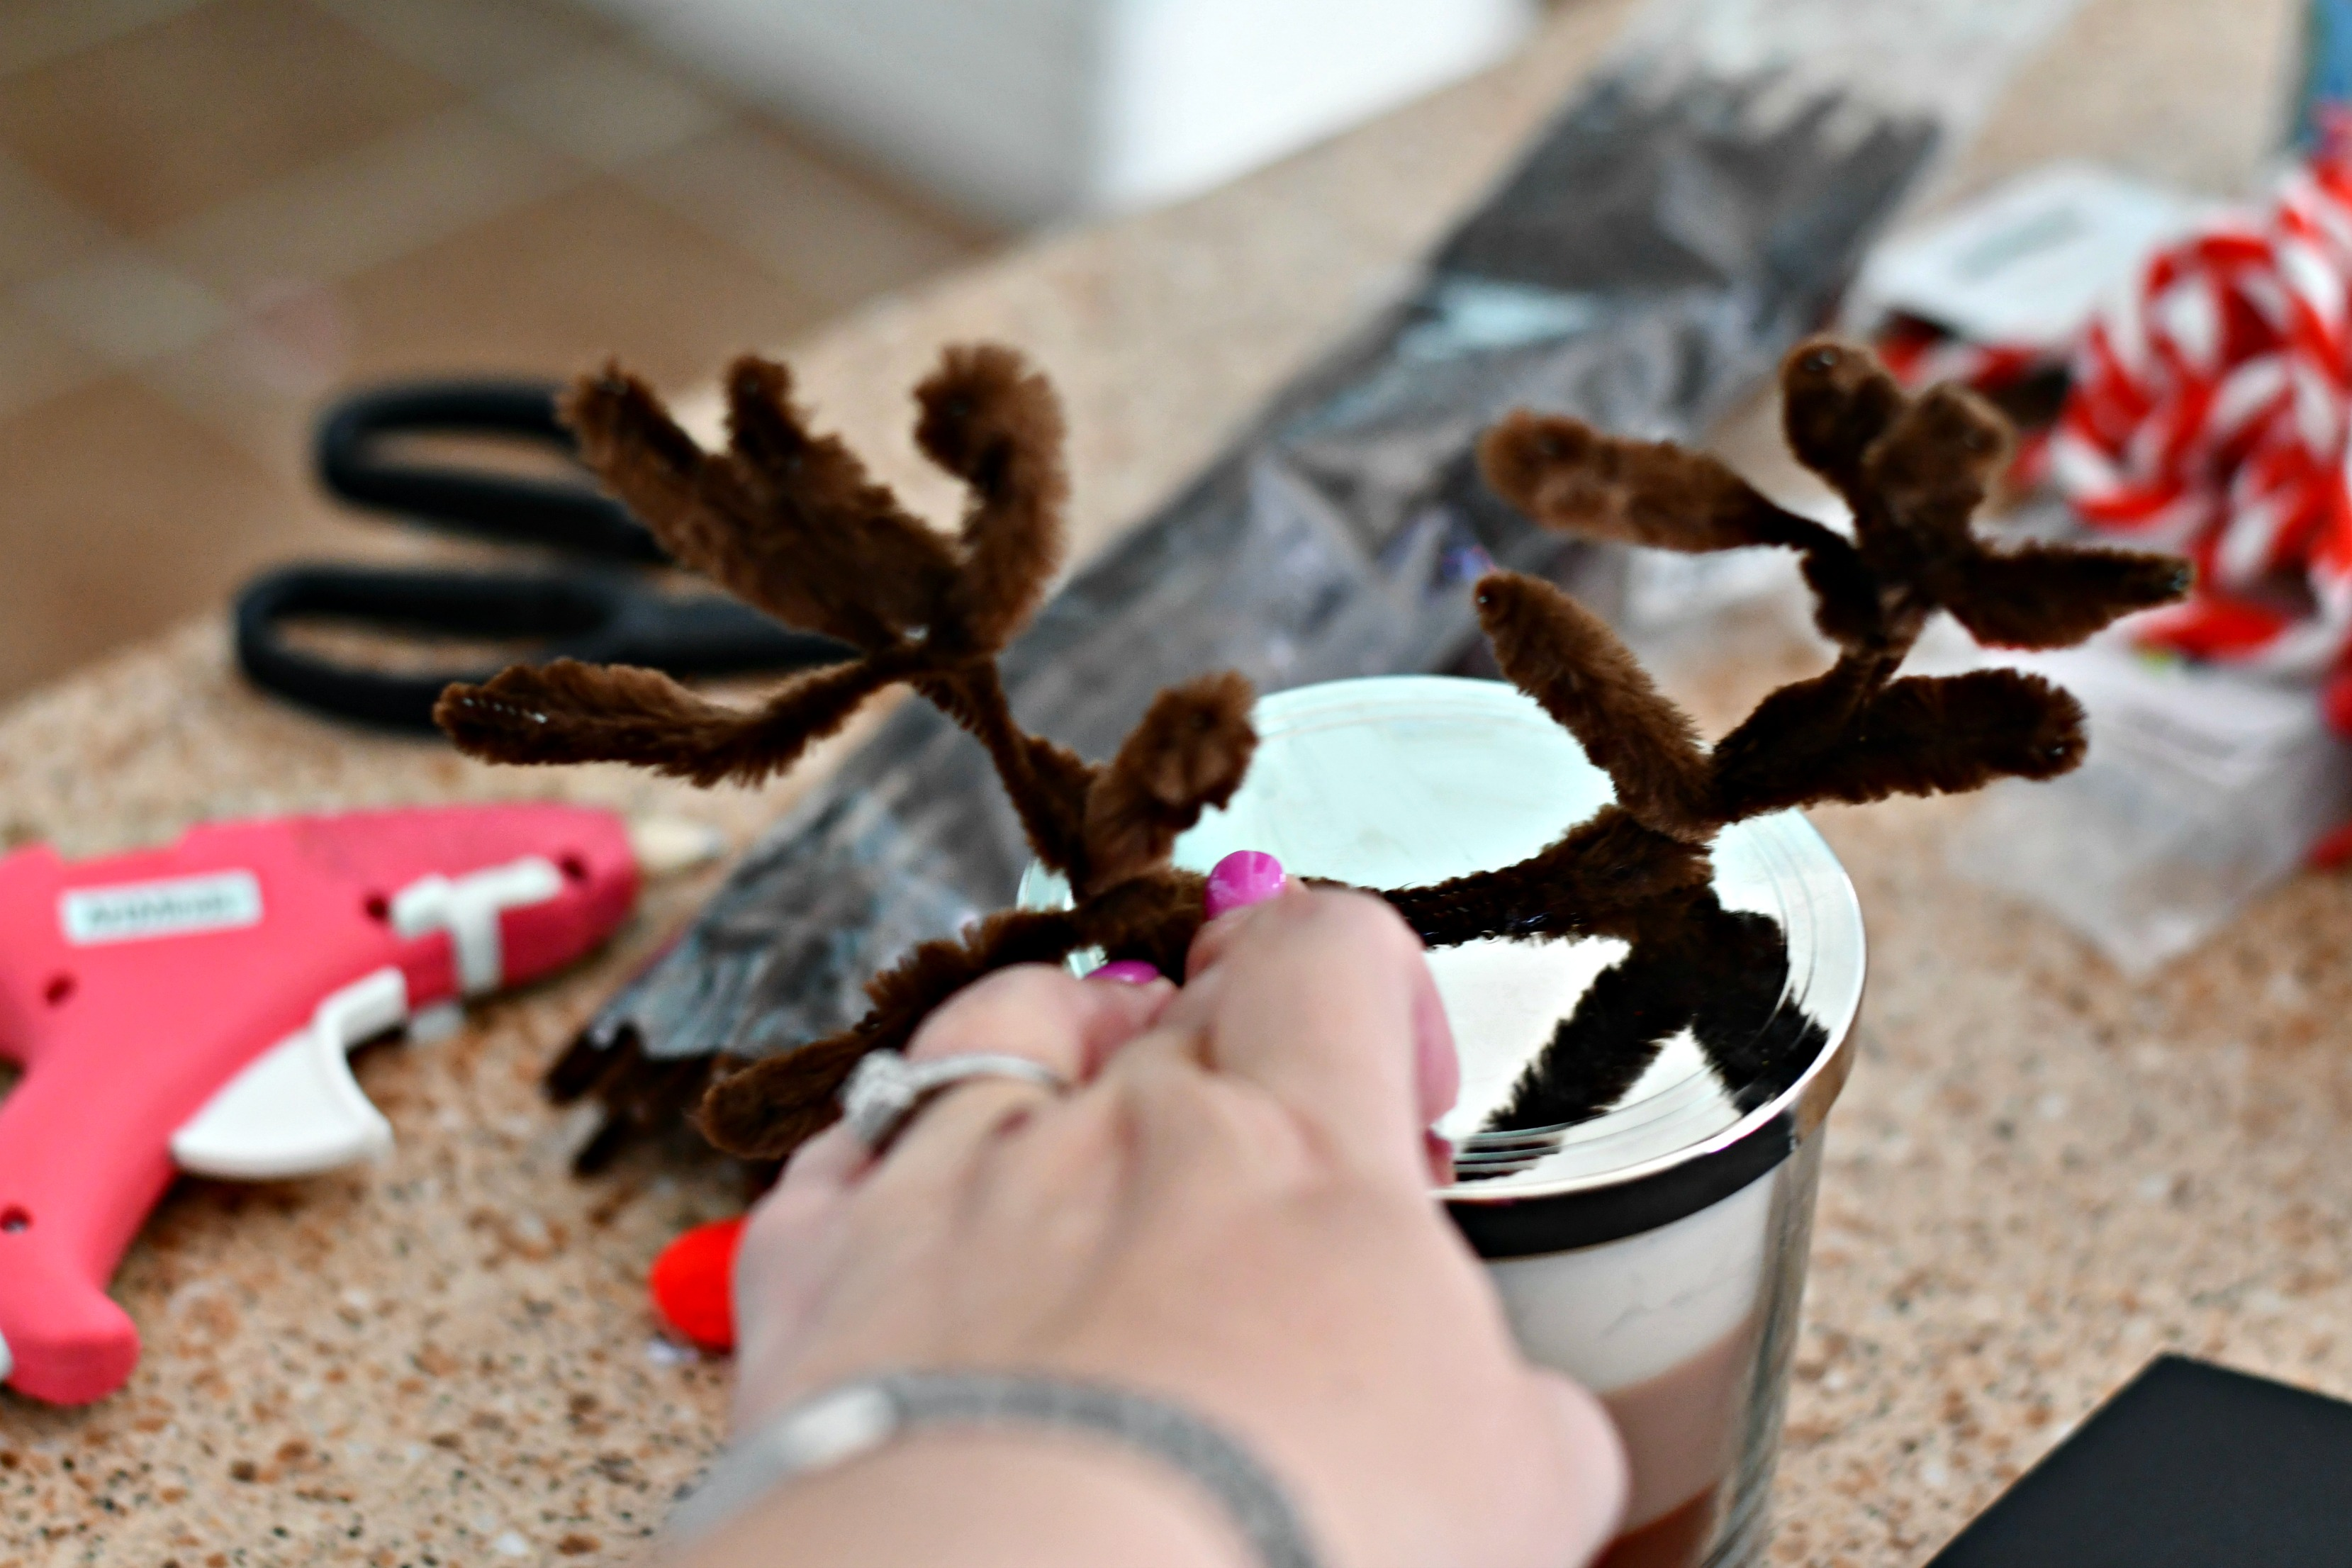 easy diy christmas candle gift ideas – Adding reindeer antlers